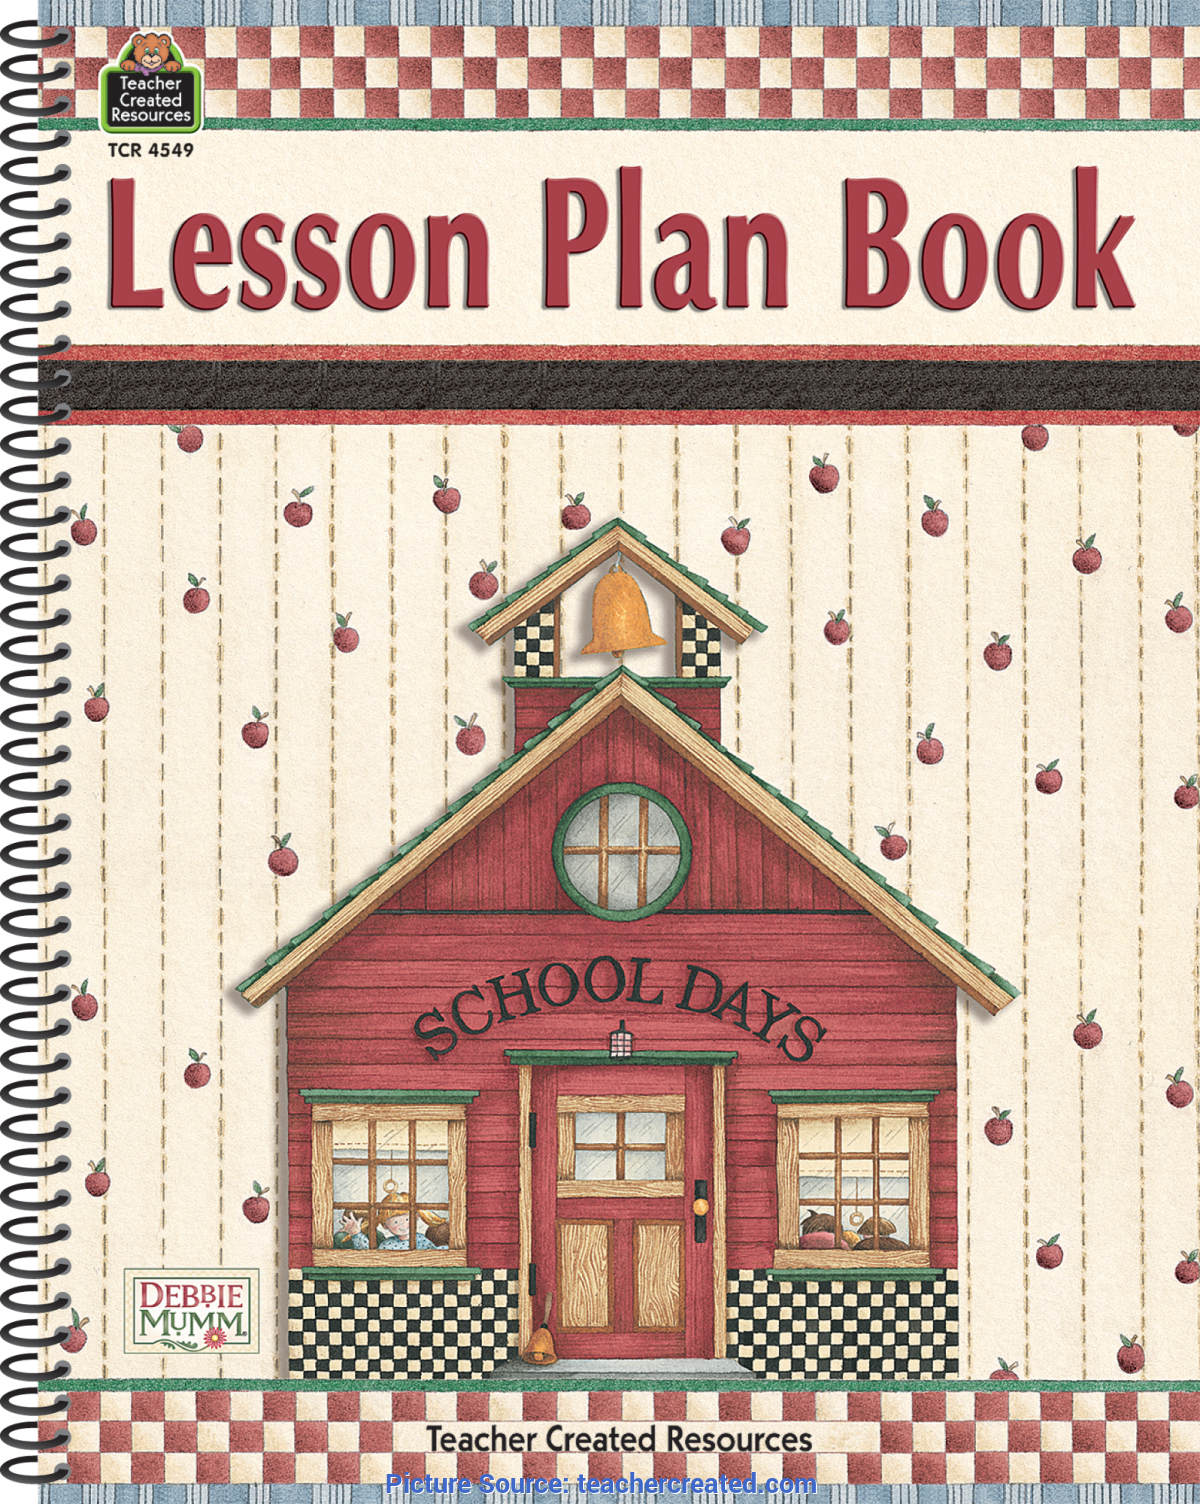 Special Best Lesson Plan Book Lesson Plan & Record Books « Teaching Aids « Decorative | Teache